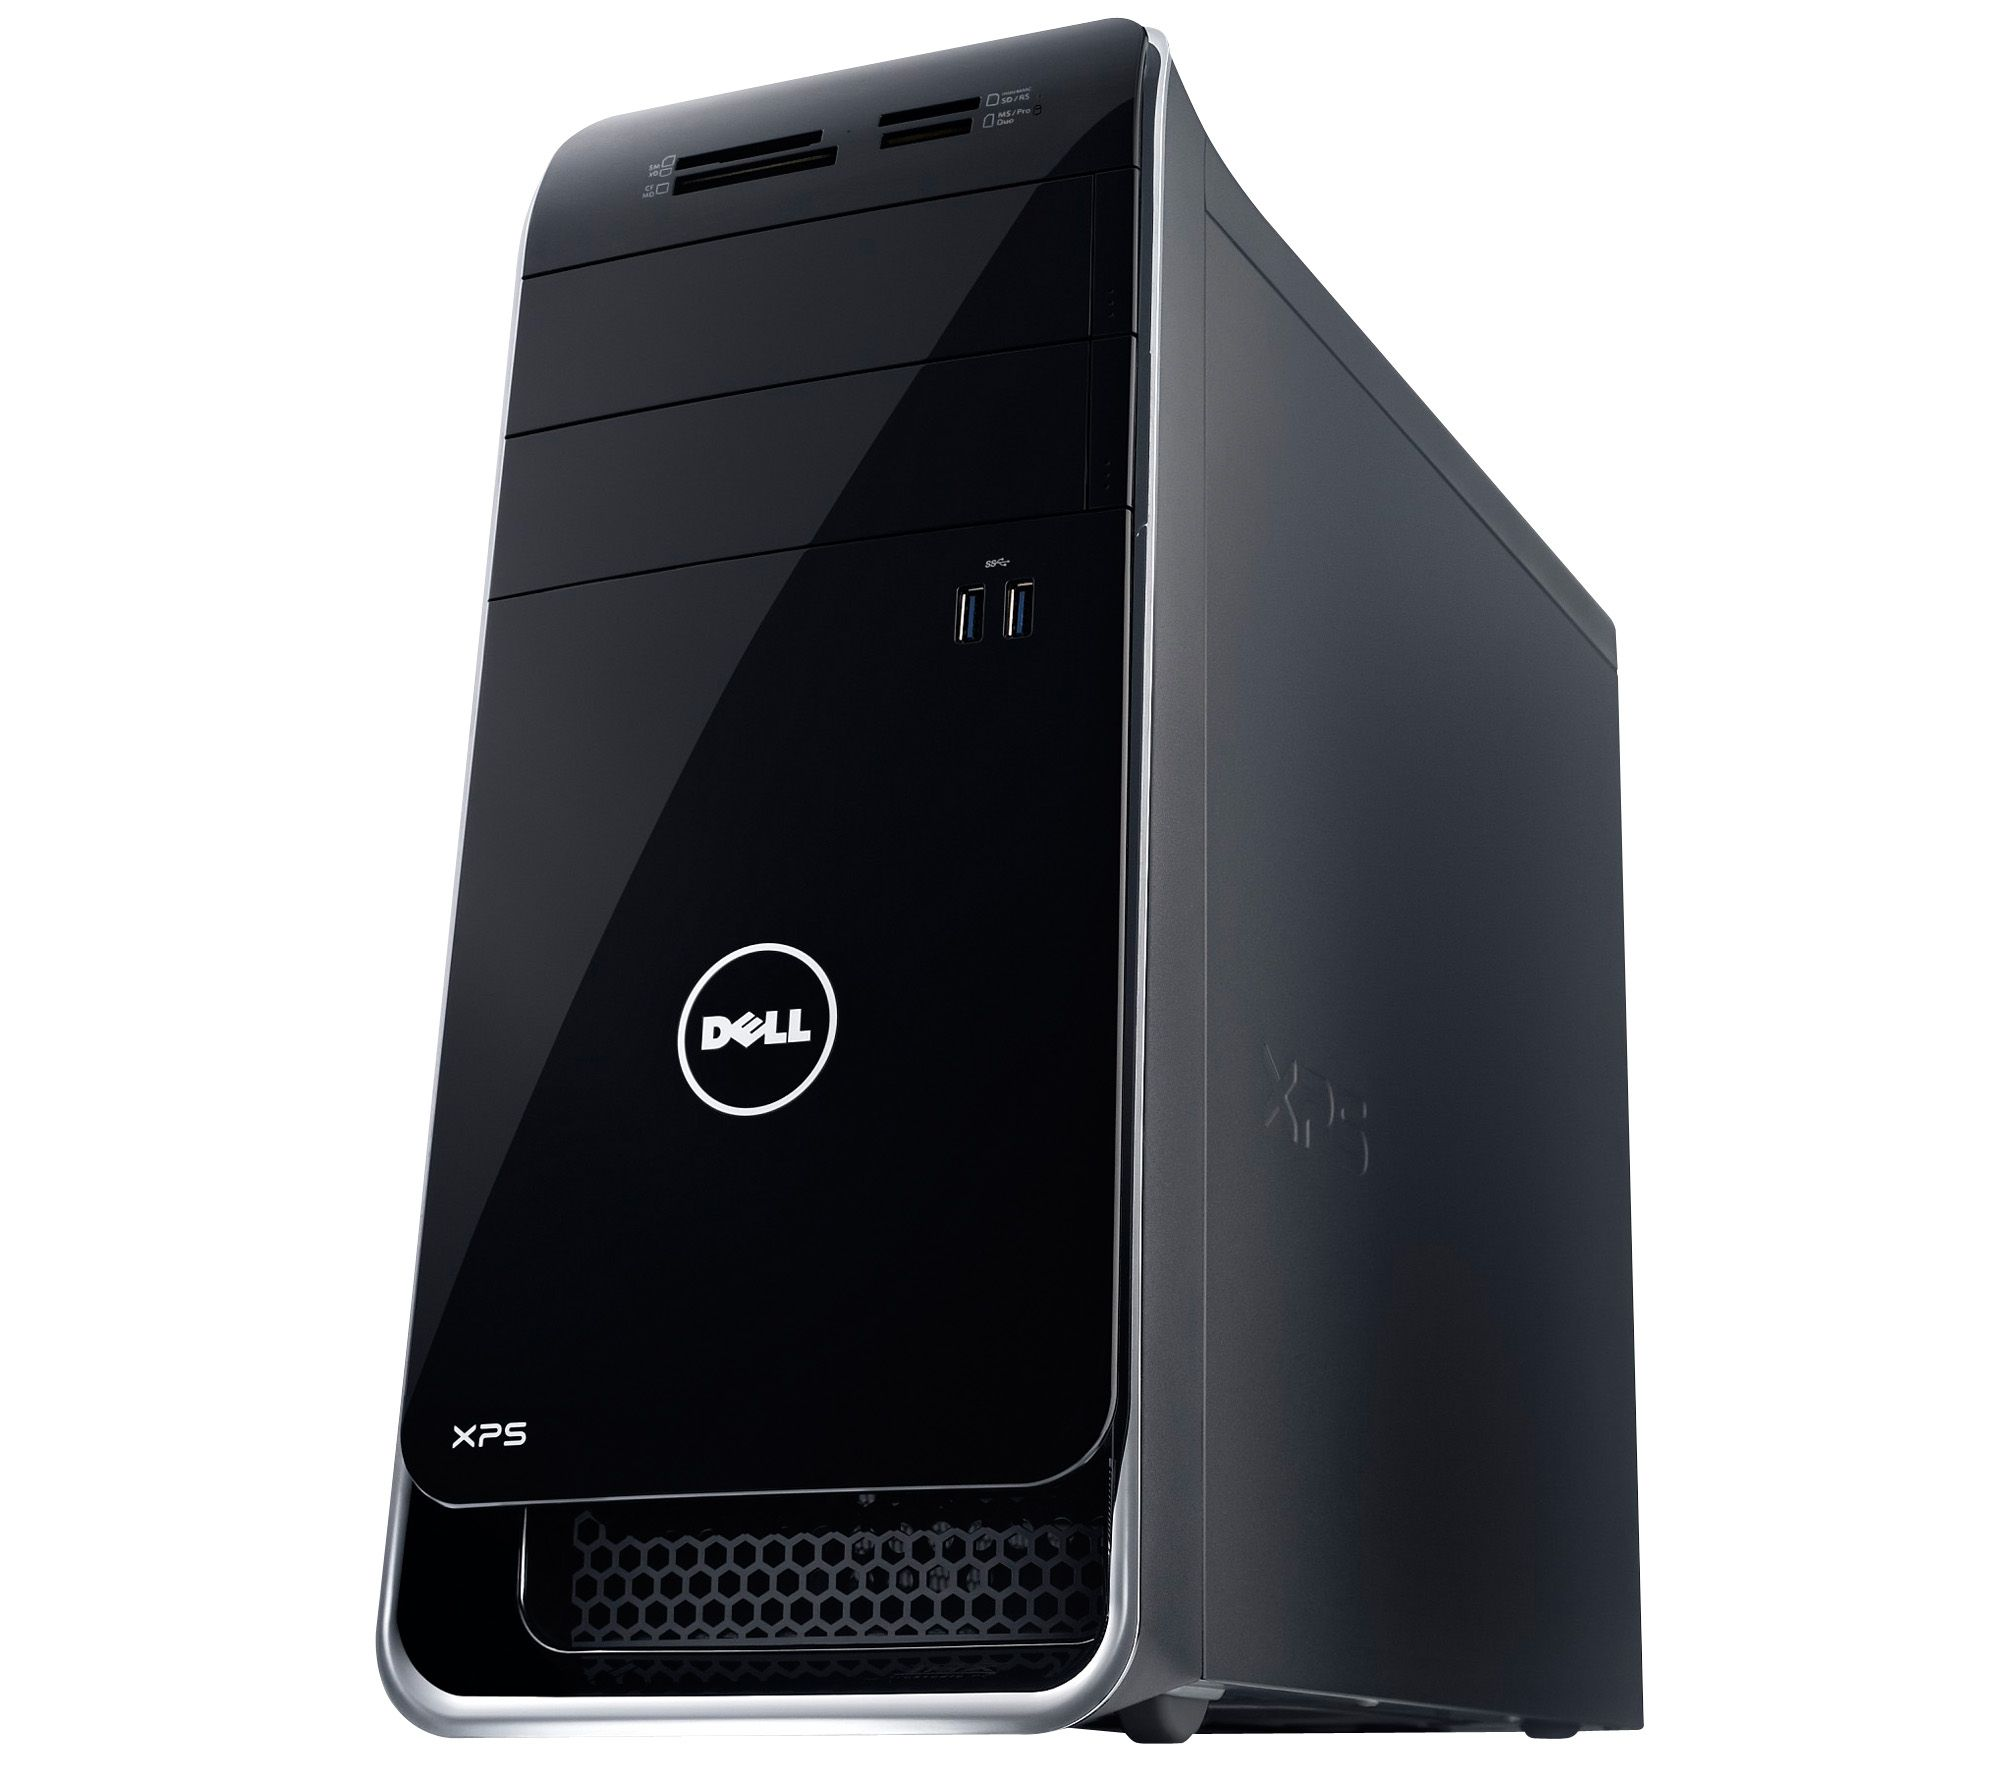 Funwithamazon besides 10761 Razer Core Review also Download likewise Diagram For Dell Desktop likewise Active Heci Driver Download. on dell xps 8700 drivers